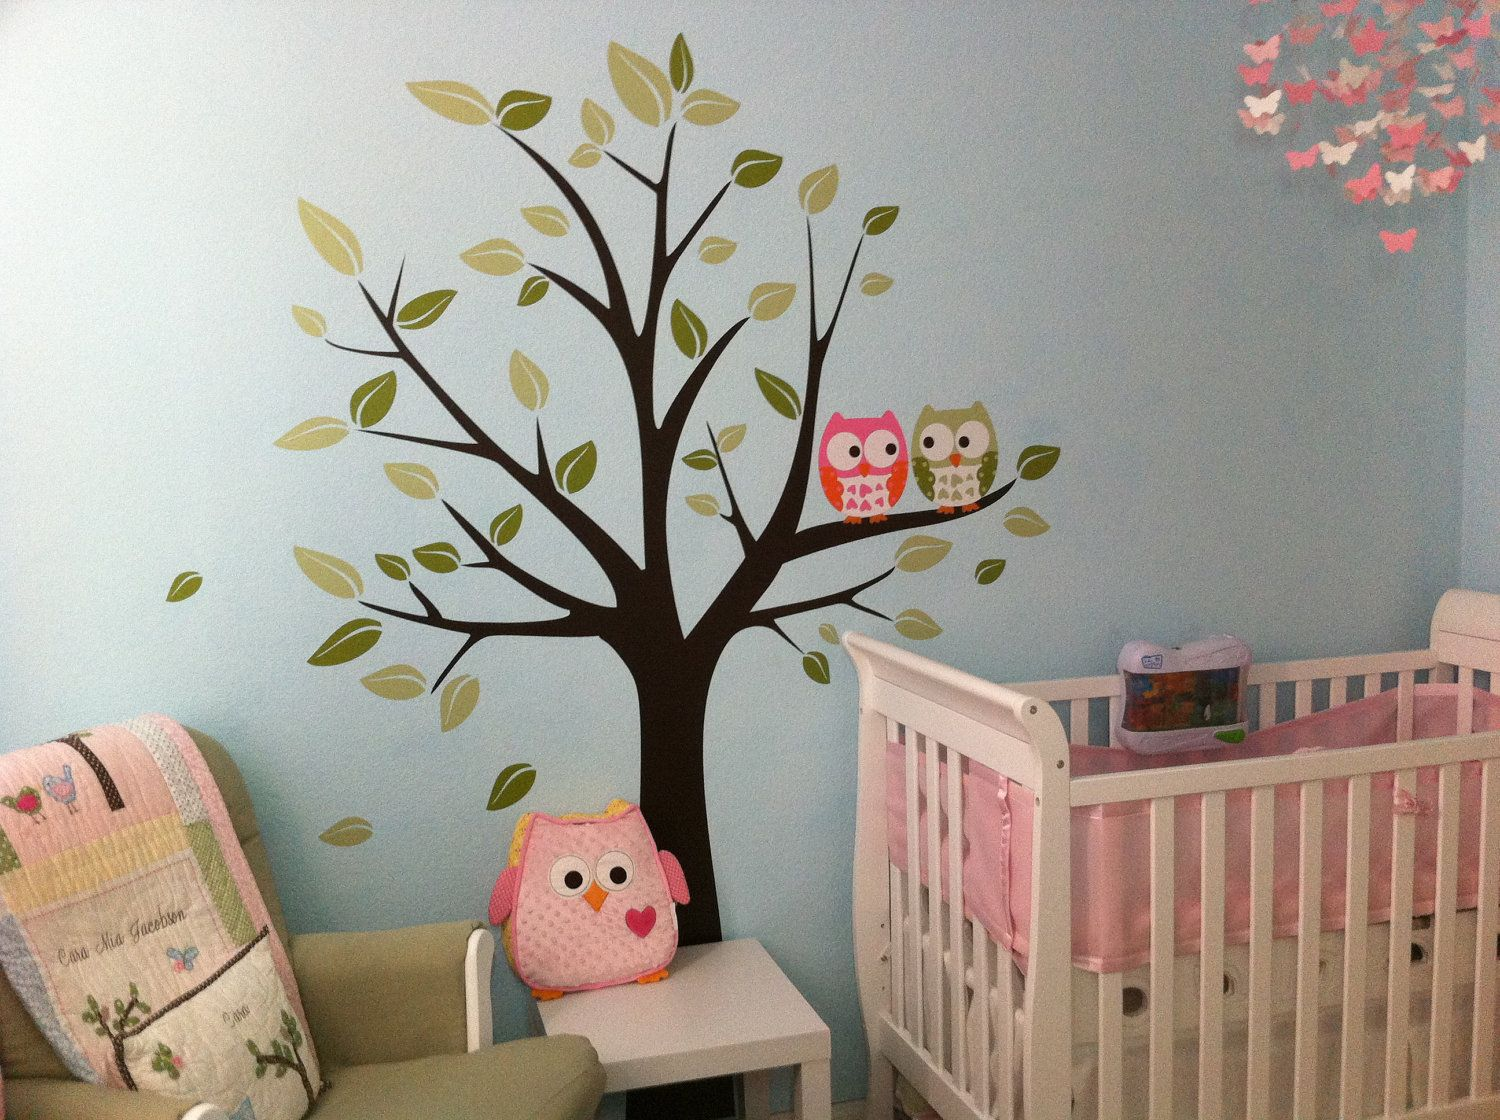 Owl Room Decor Wall Decals Owls On A Tree Baby Nursery Decals By